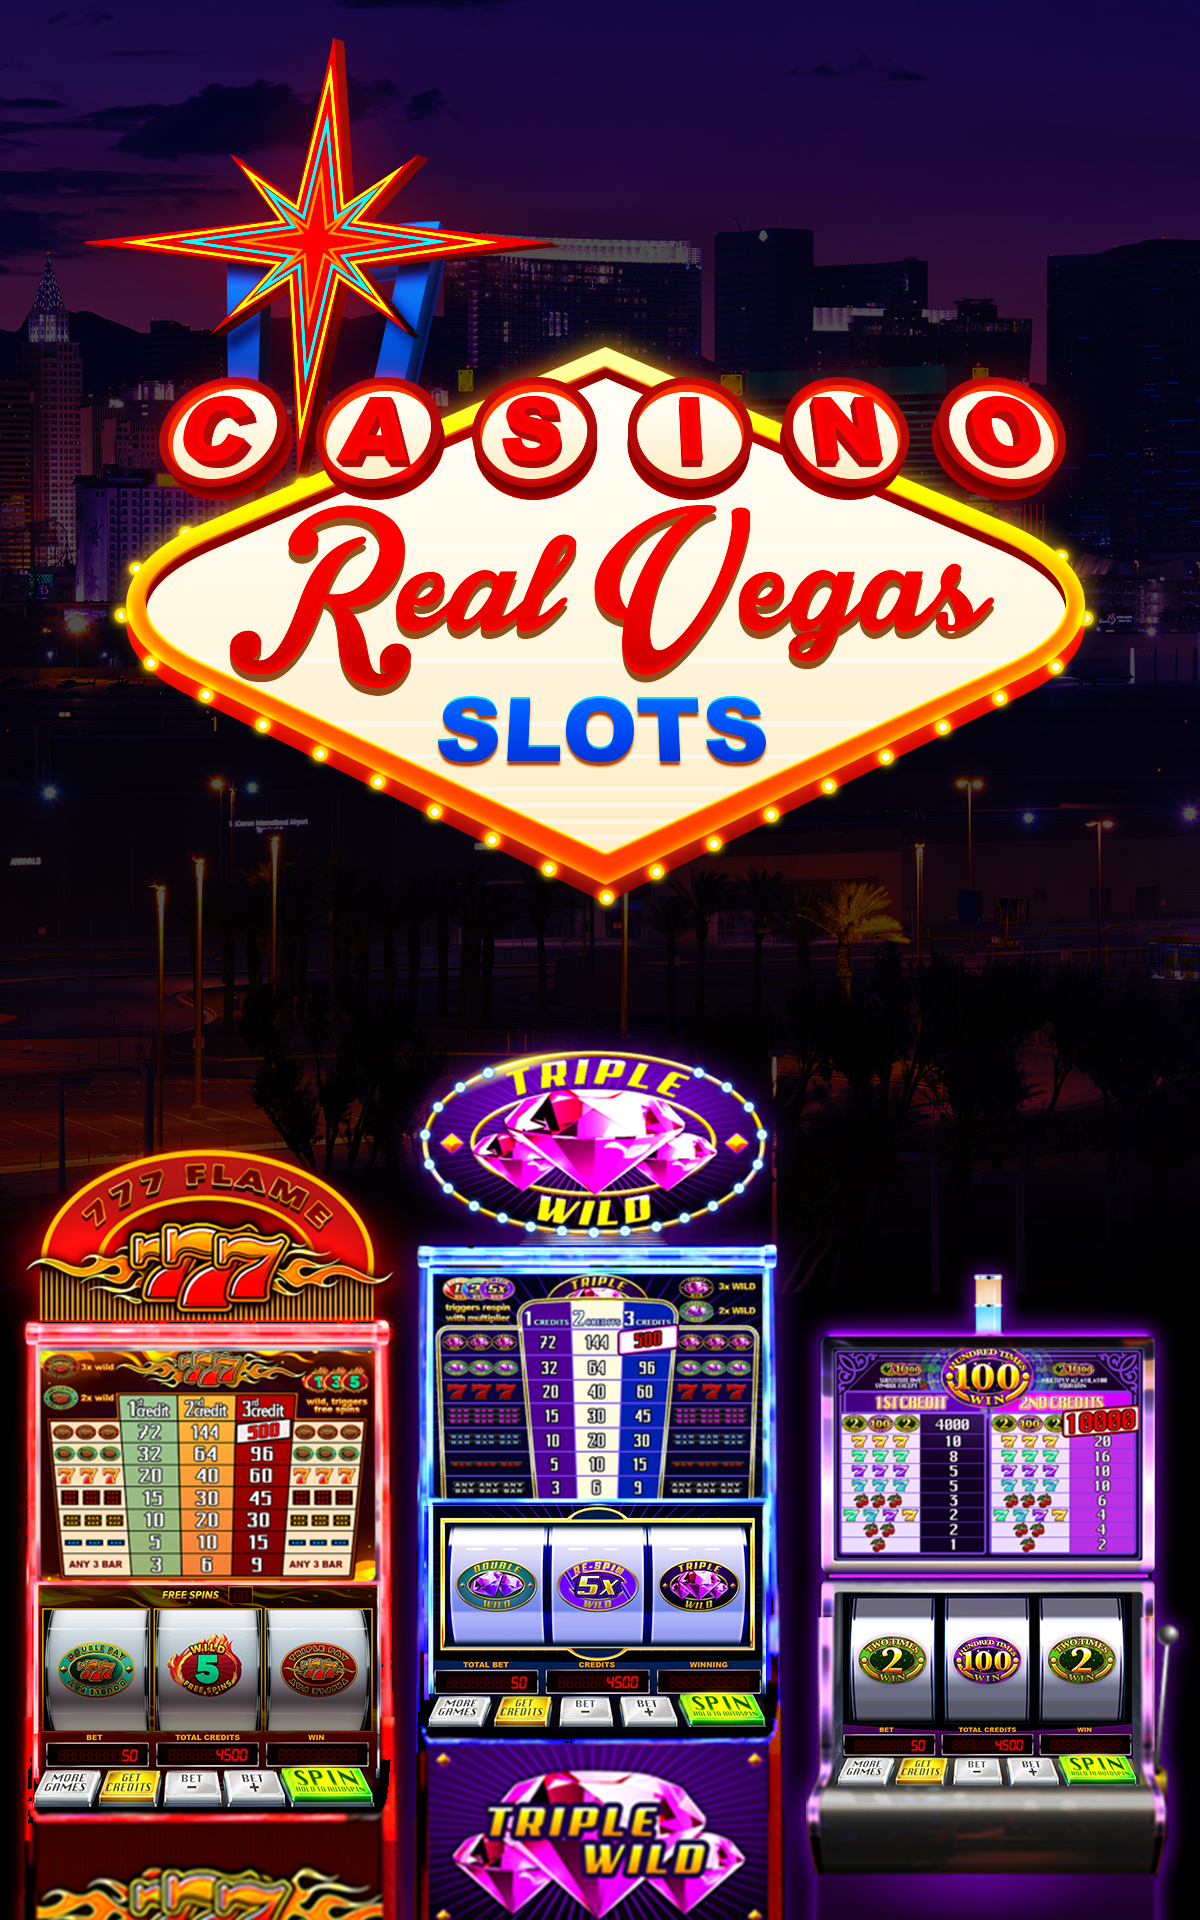 Free Slot Machine Las Vegas